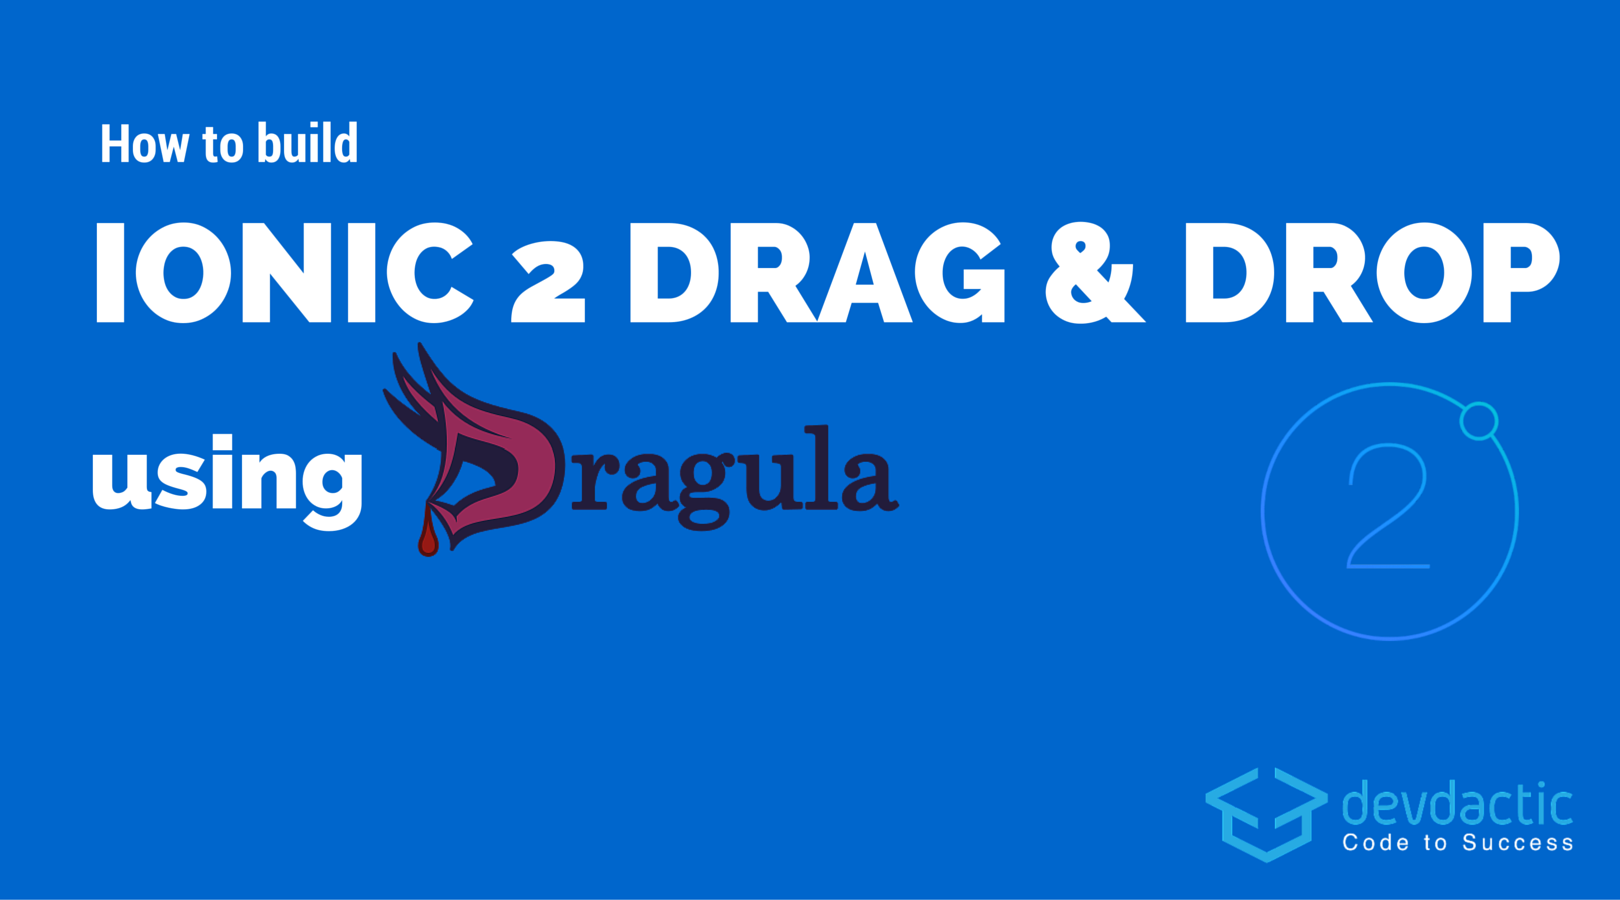 How to build Drag & Drop with Ionic 2 using Dragula   Ionic